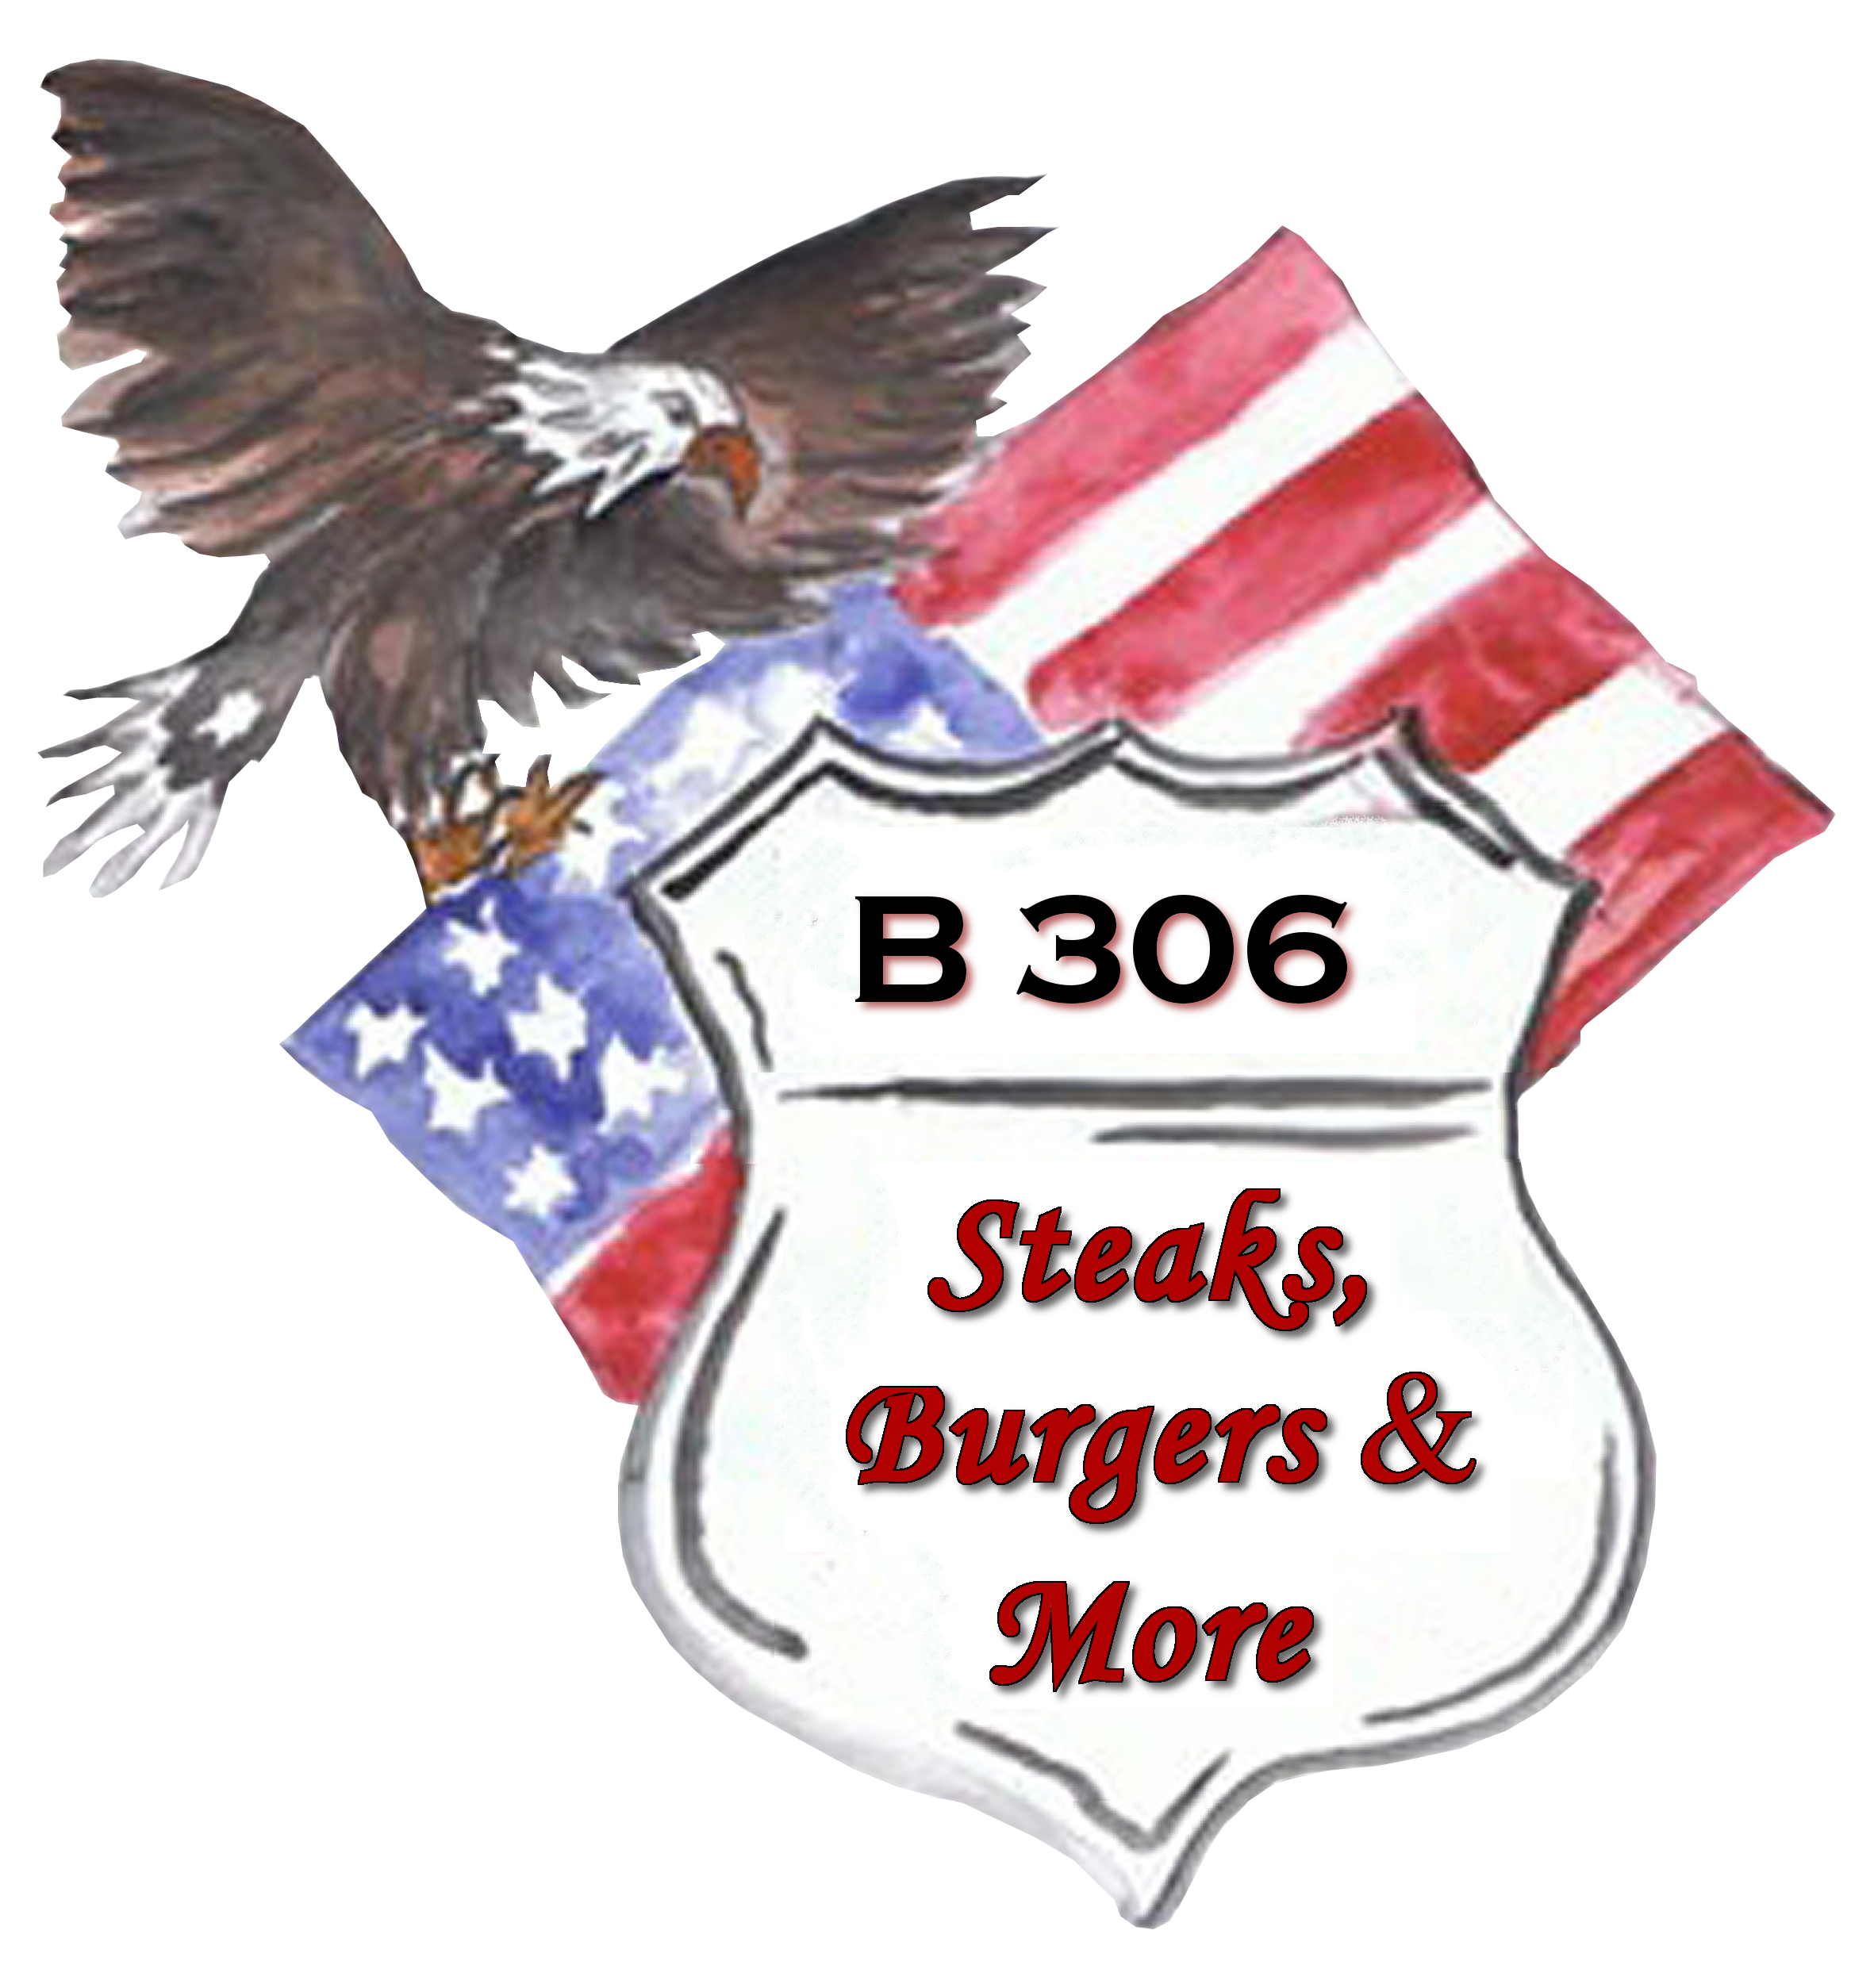 B306 Steakhouse